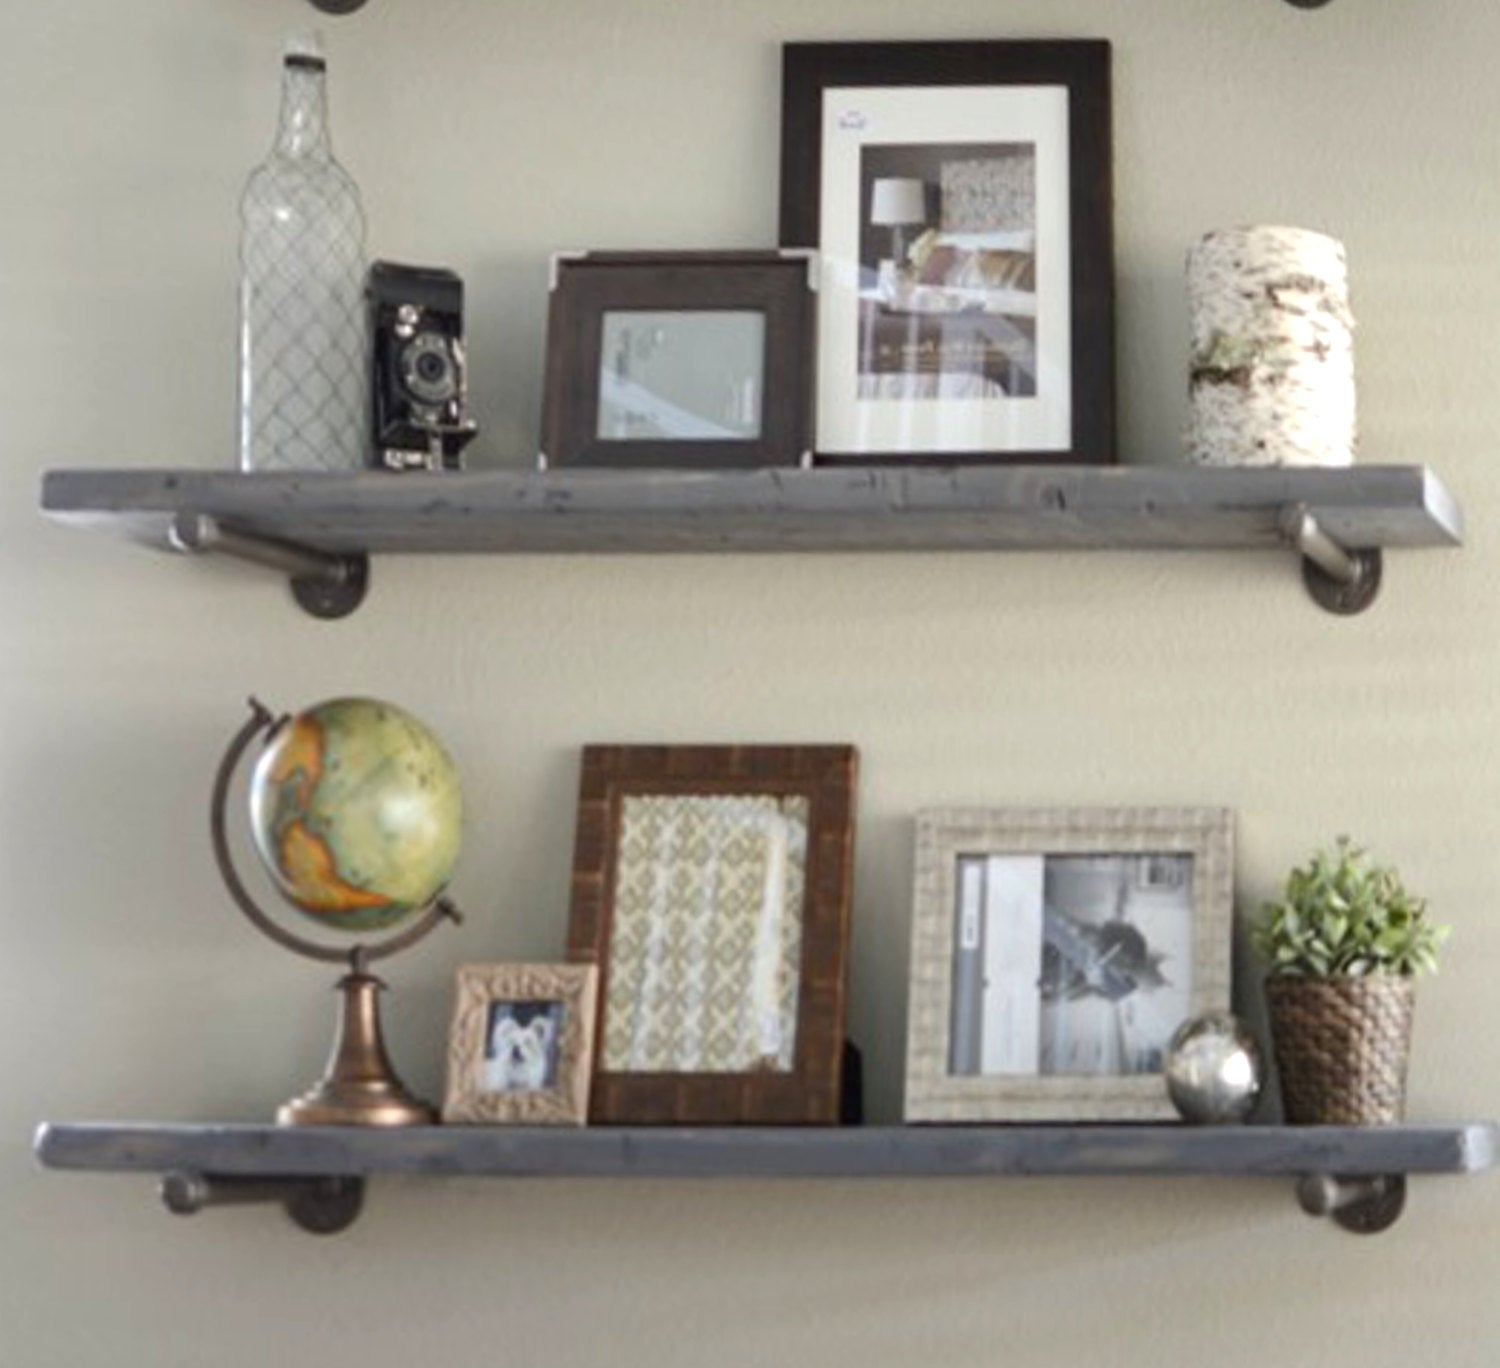 depth industrial gray wash floating shelf graywash etsy fullxfull lanb grey shelves television stands for flat screens cliffhanger bracket shoe holder extra large corner black